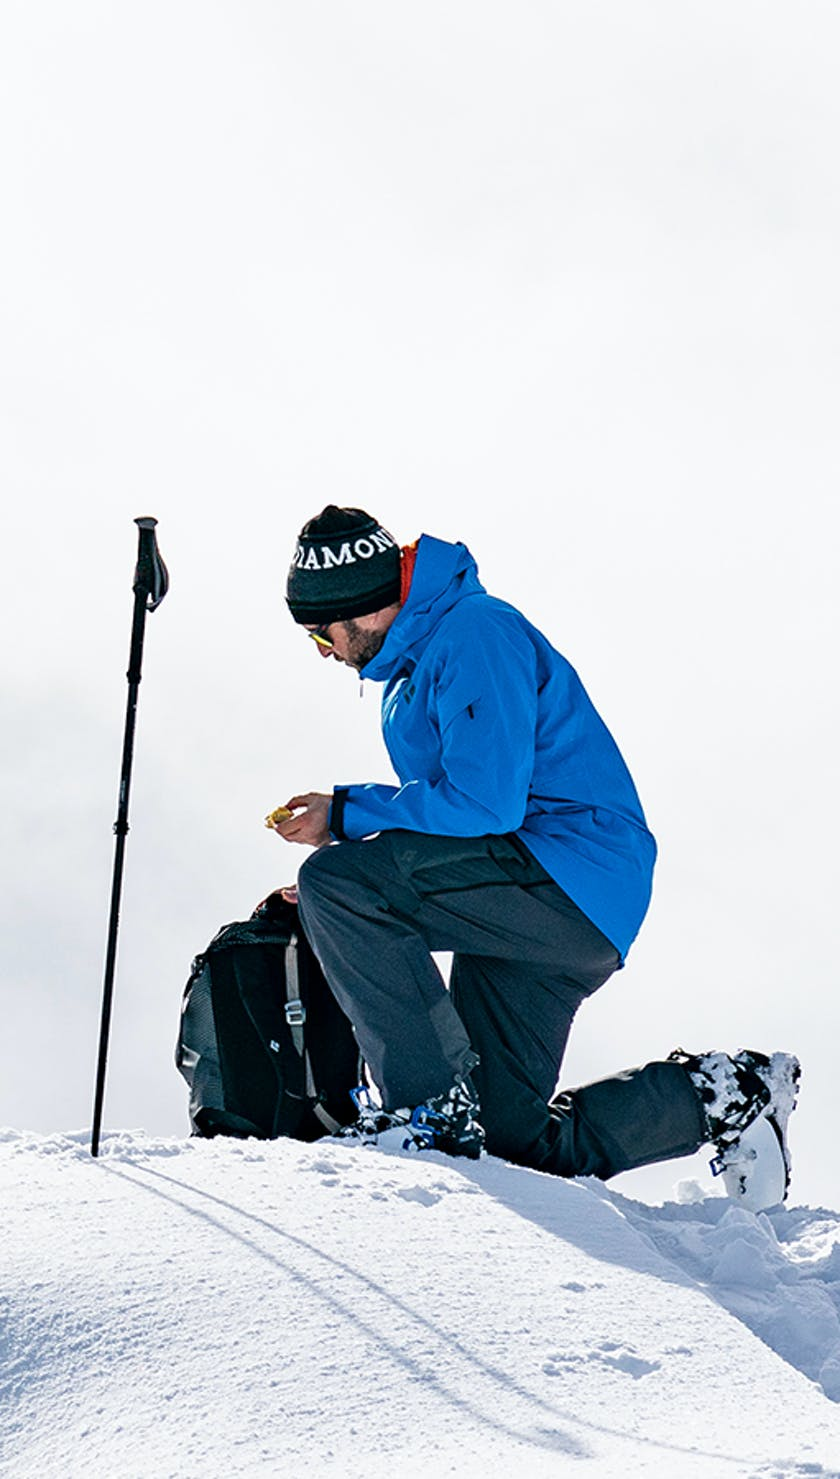 man getting his skis set up for a line